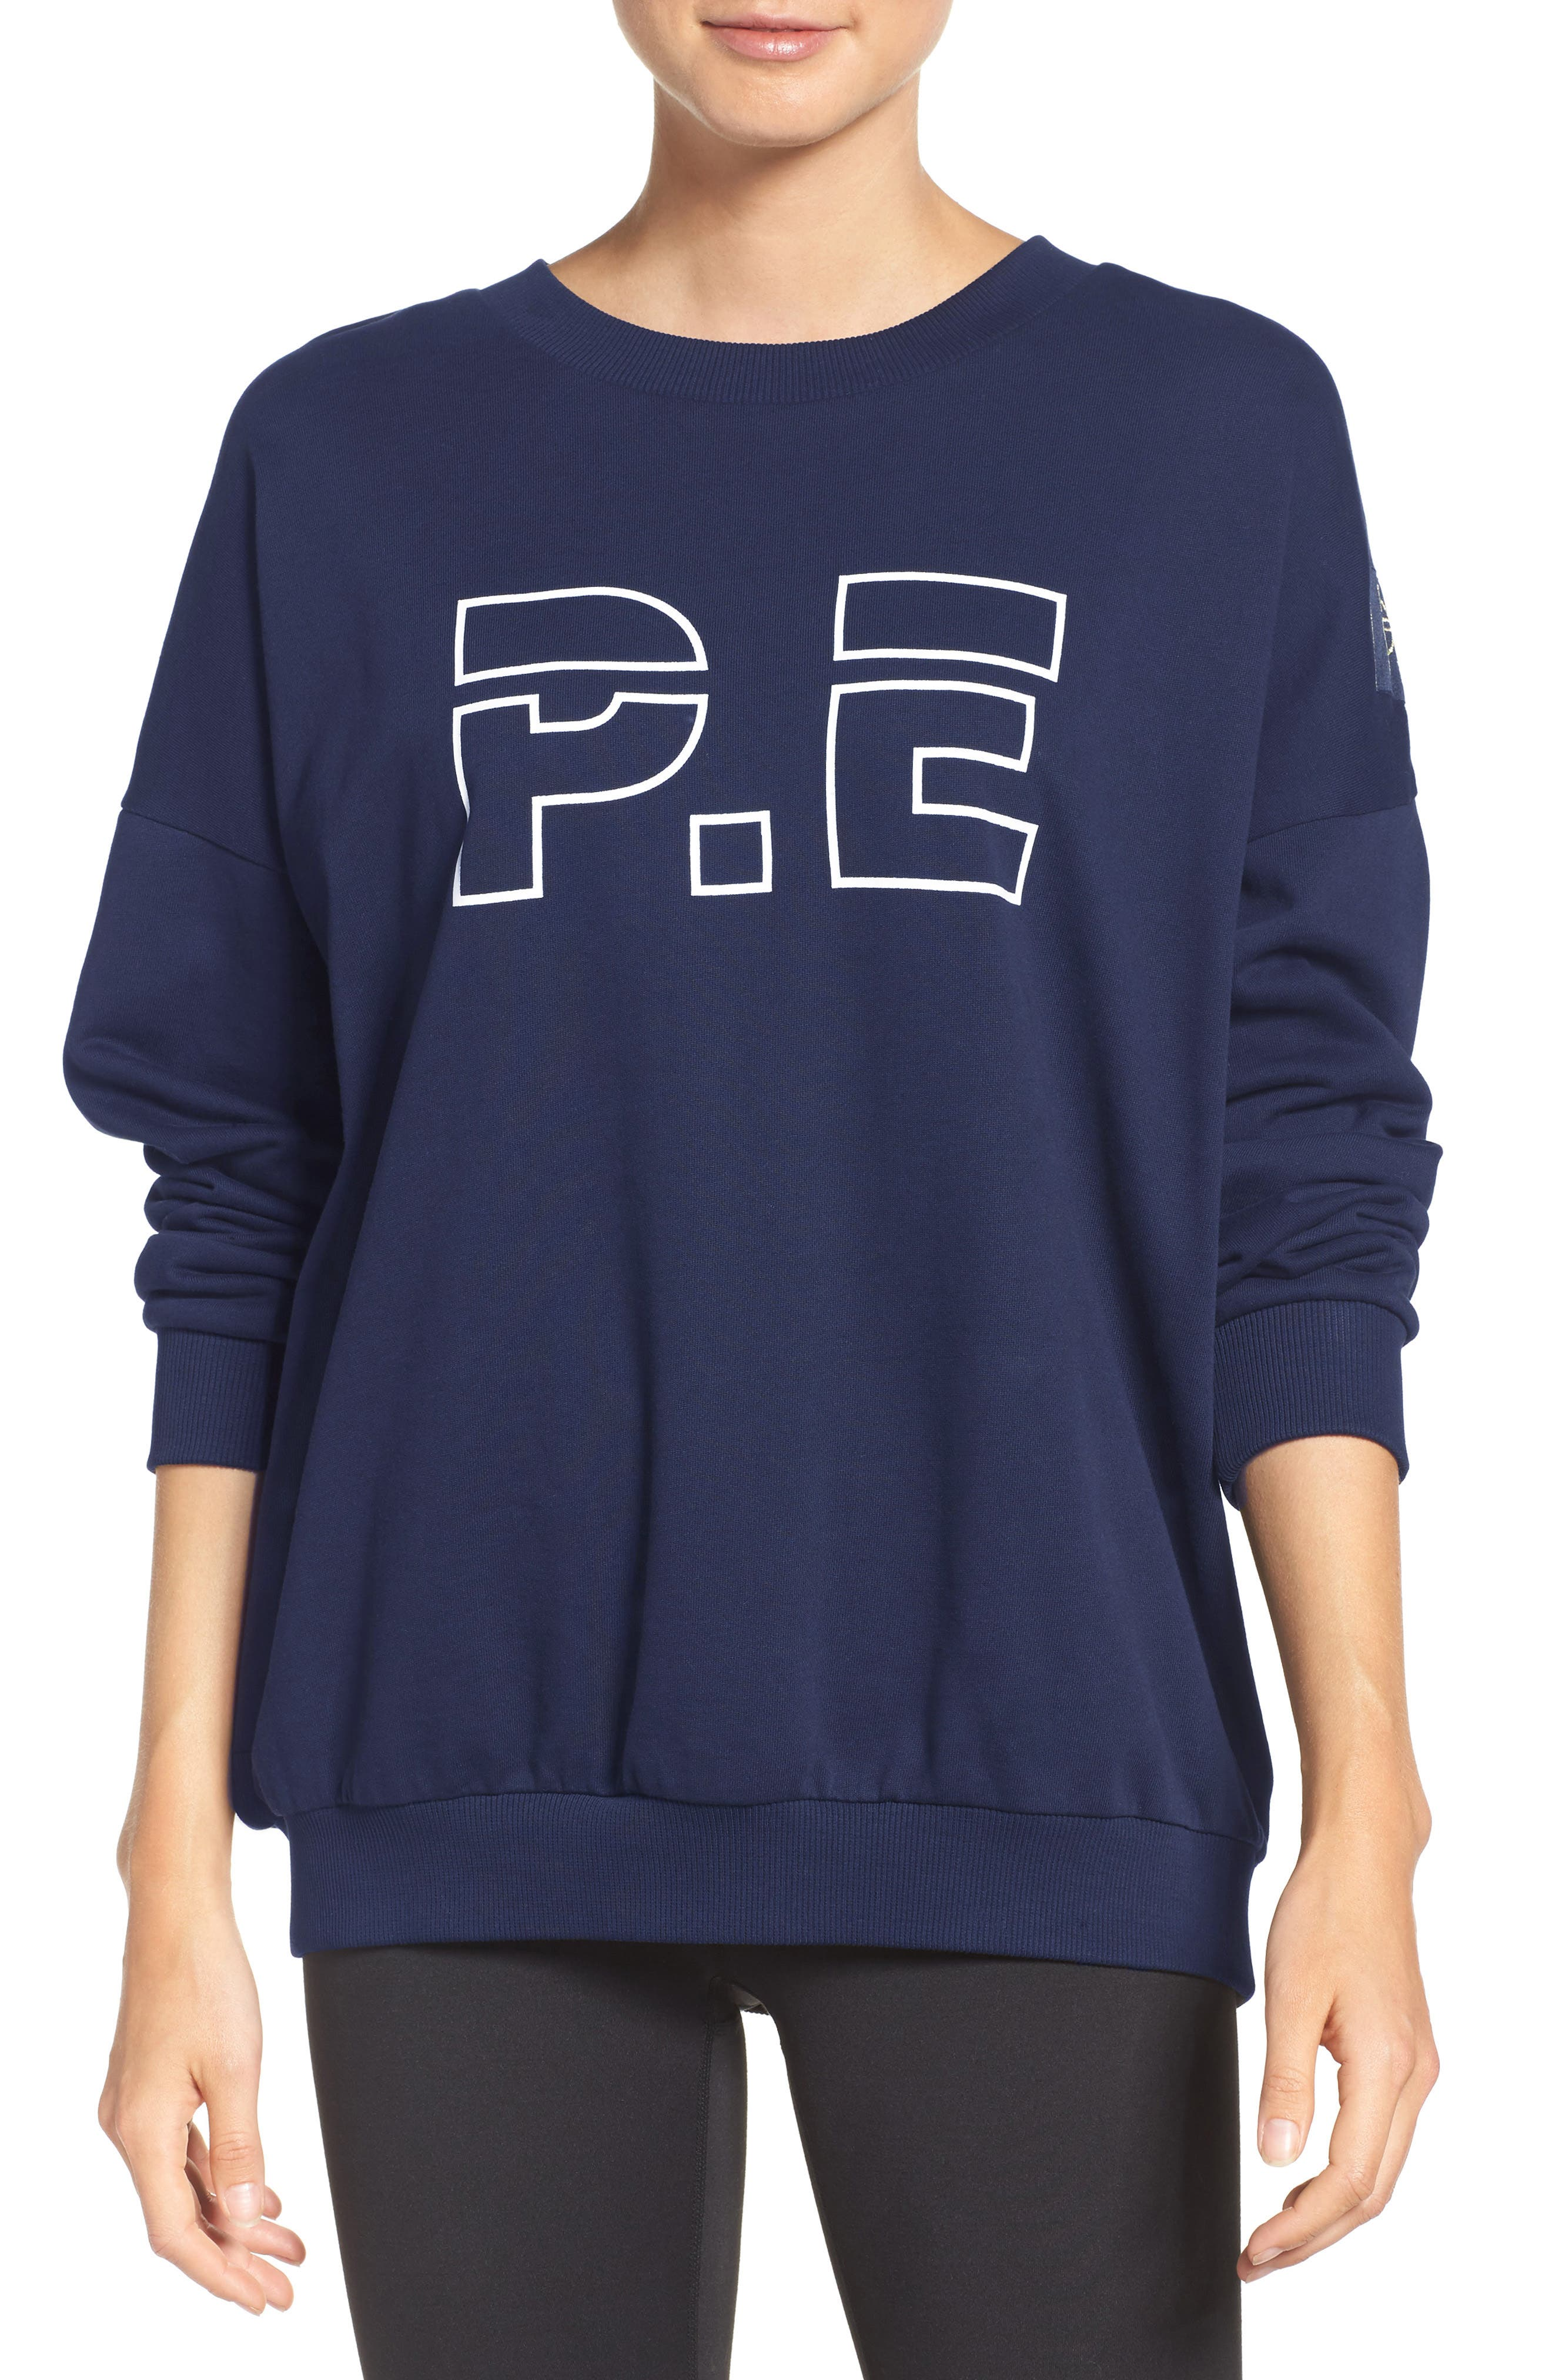 P.E. Nation The Heads Up Sweatshirt,                         Main,                         color, Navy